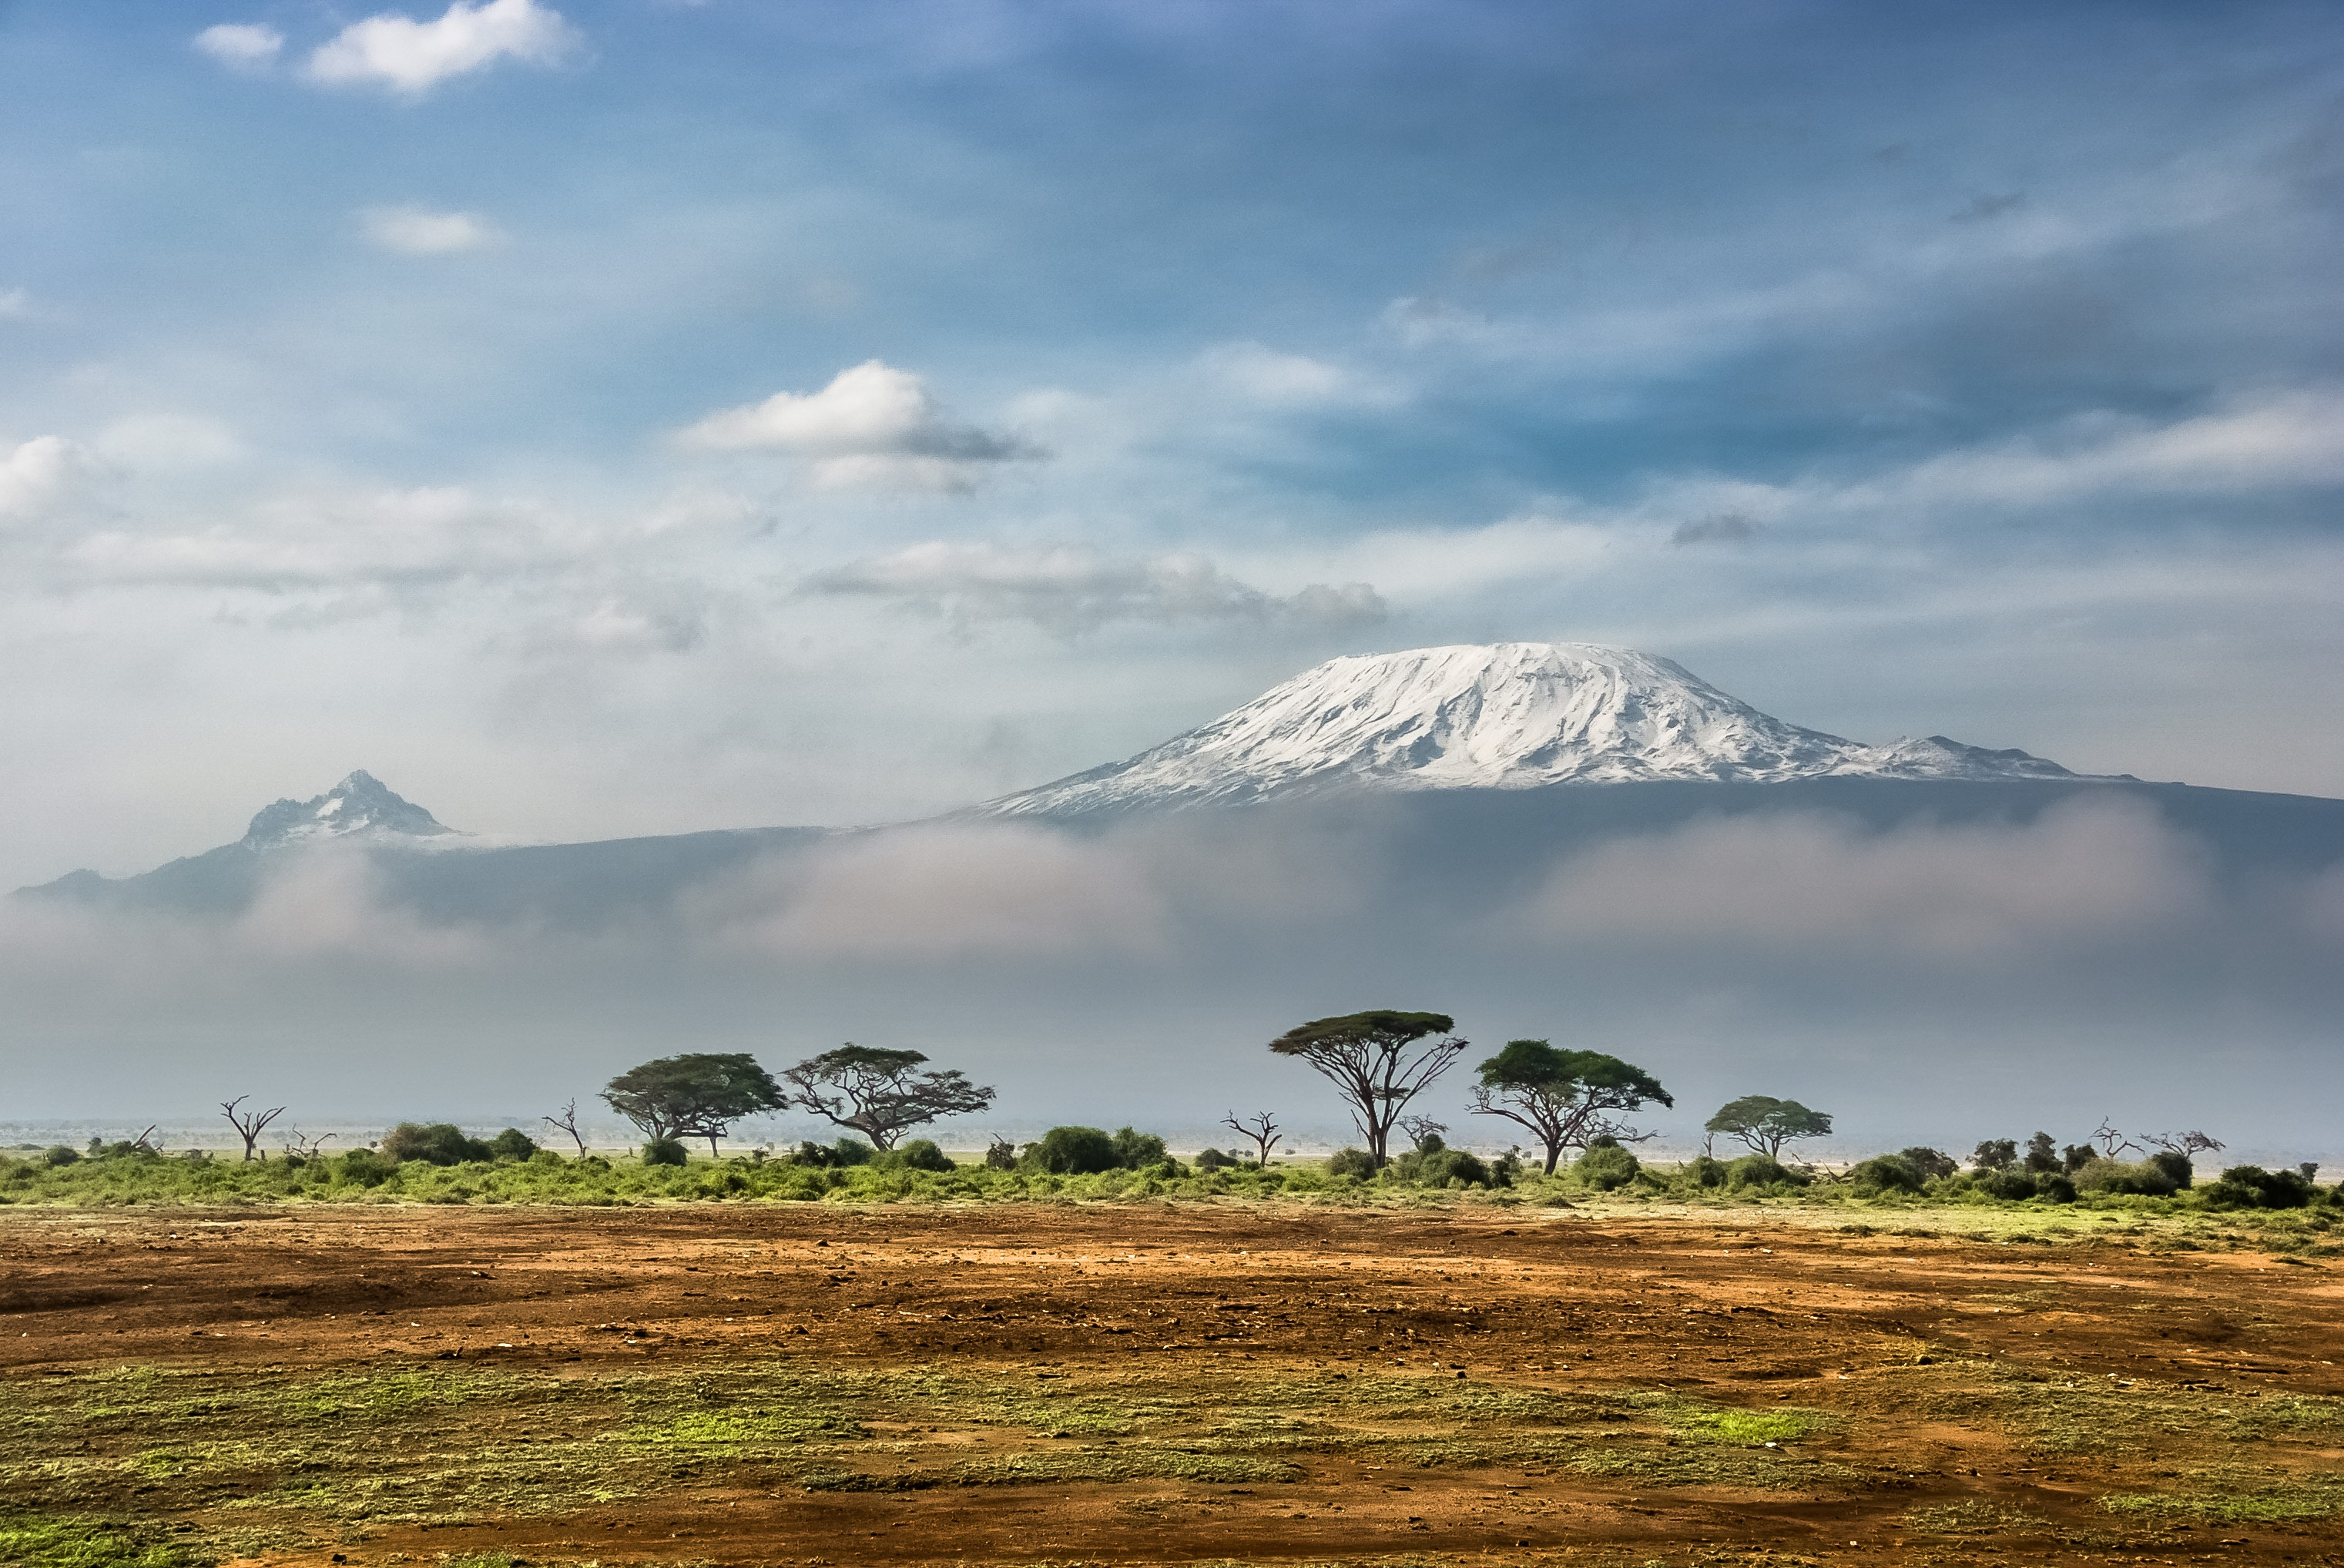 The Top 5 Countries for Safaris in Africa